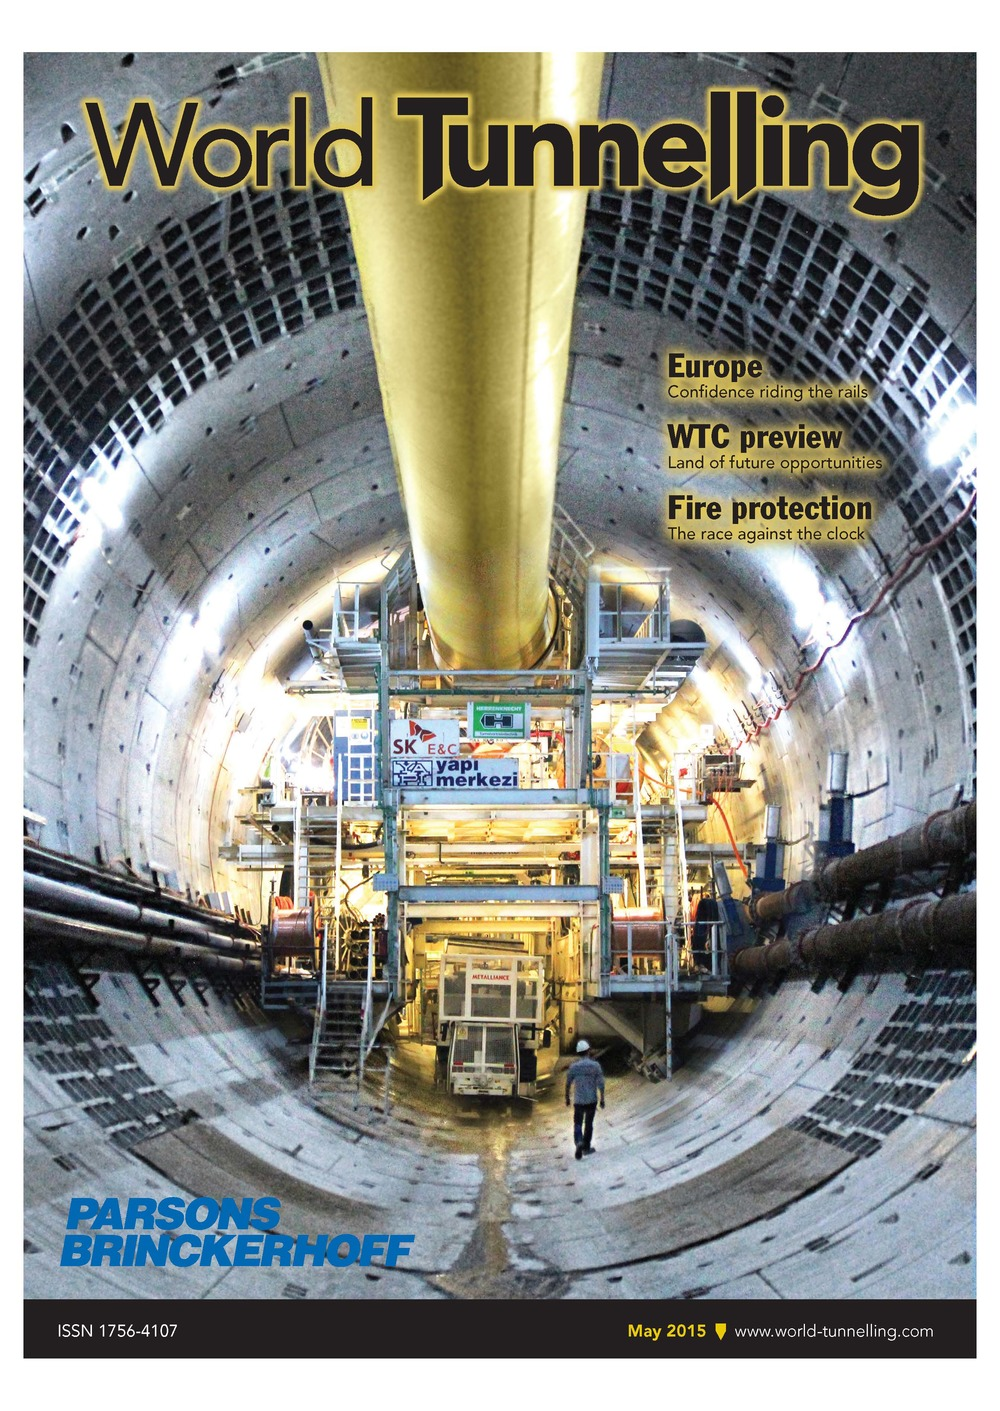 world tunnelling magazine.jpeg